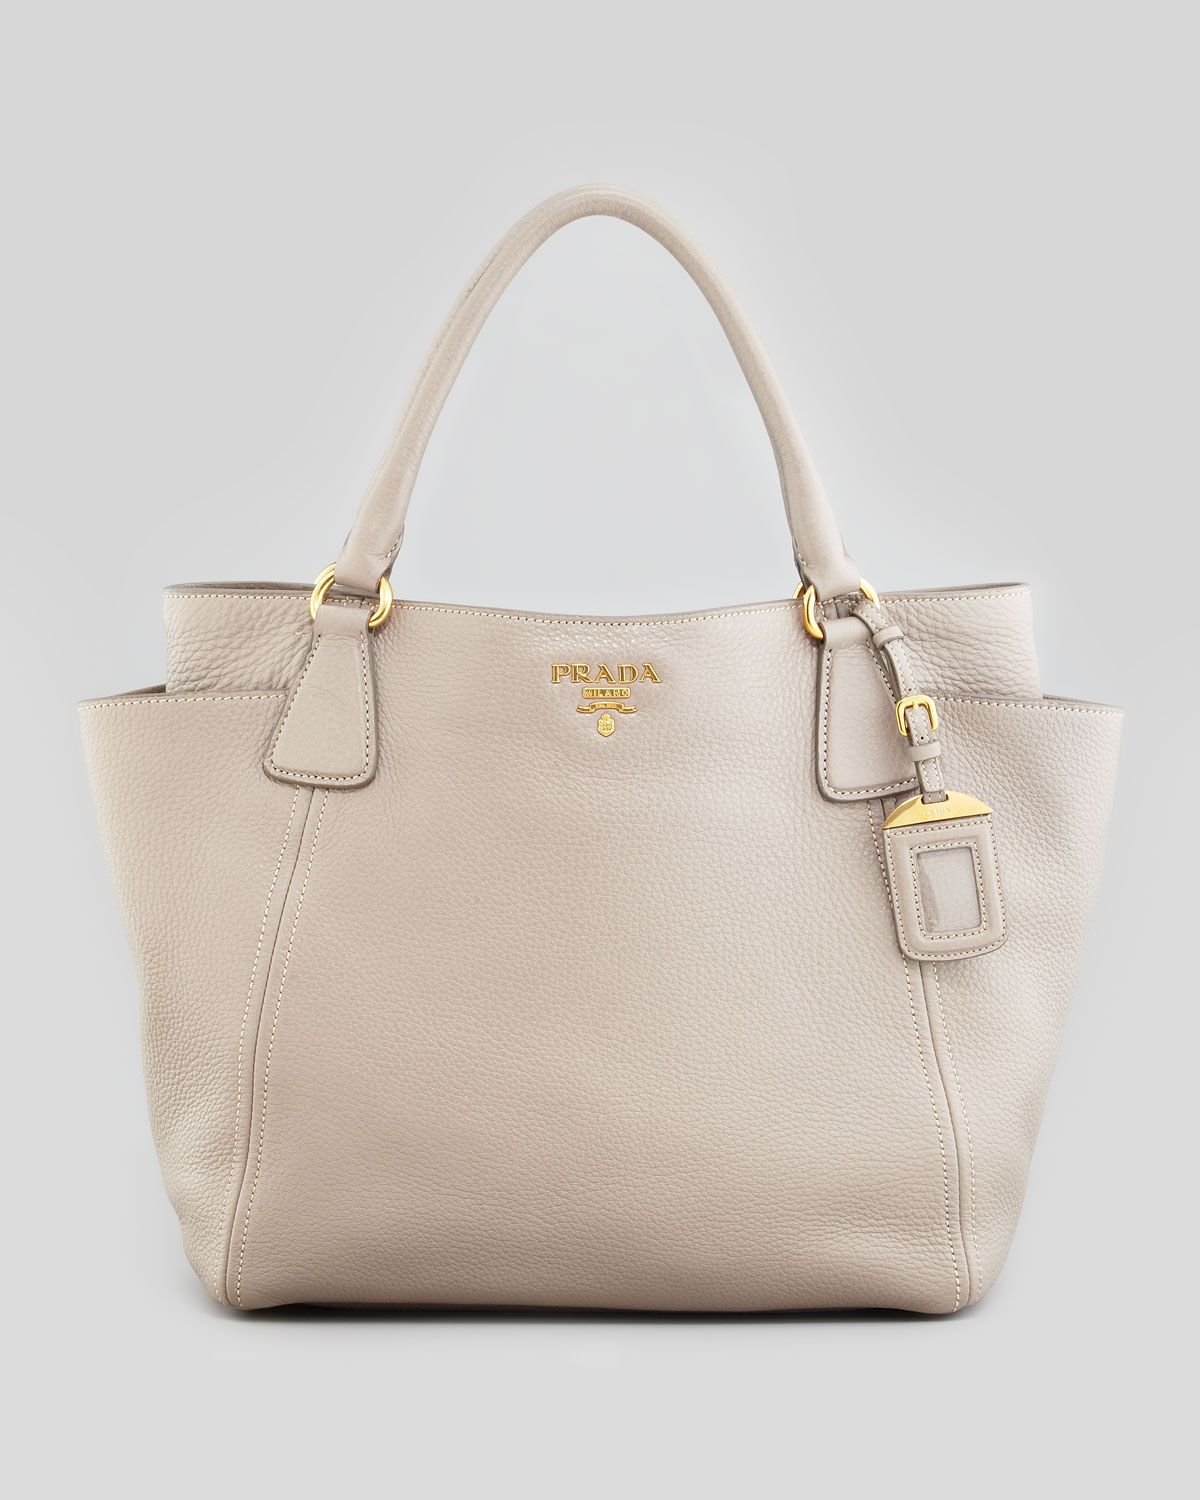 89002a2f7904 Daino Side-Pocket Tote Bag Light Gray | hand bags and bags | Bags ...